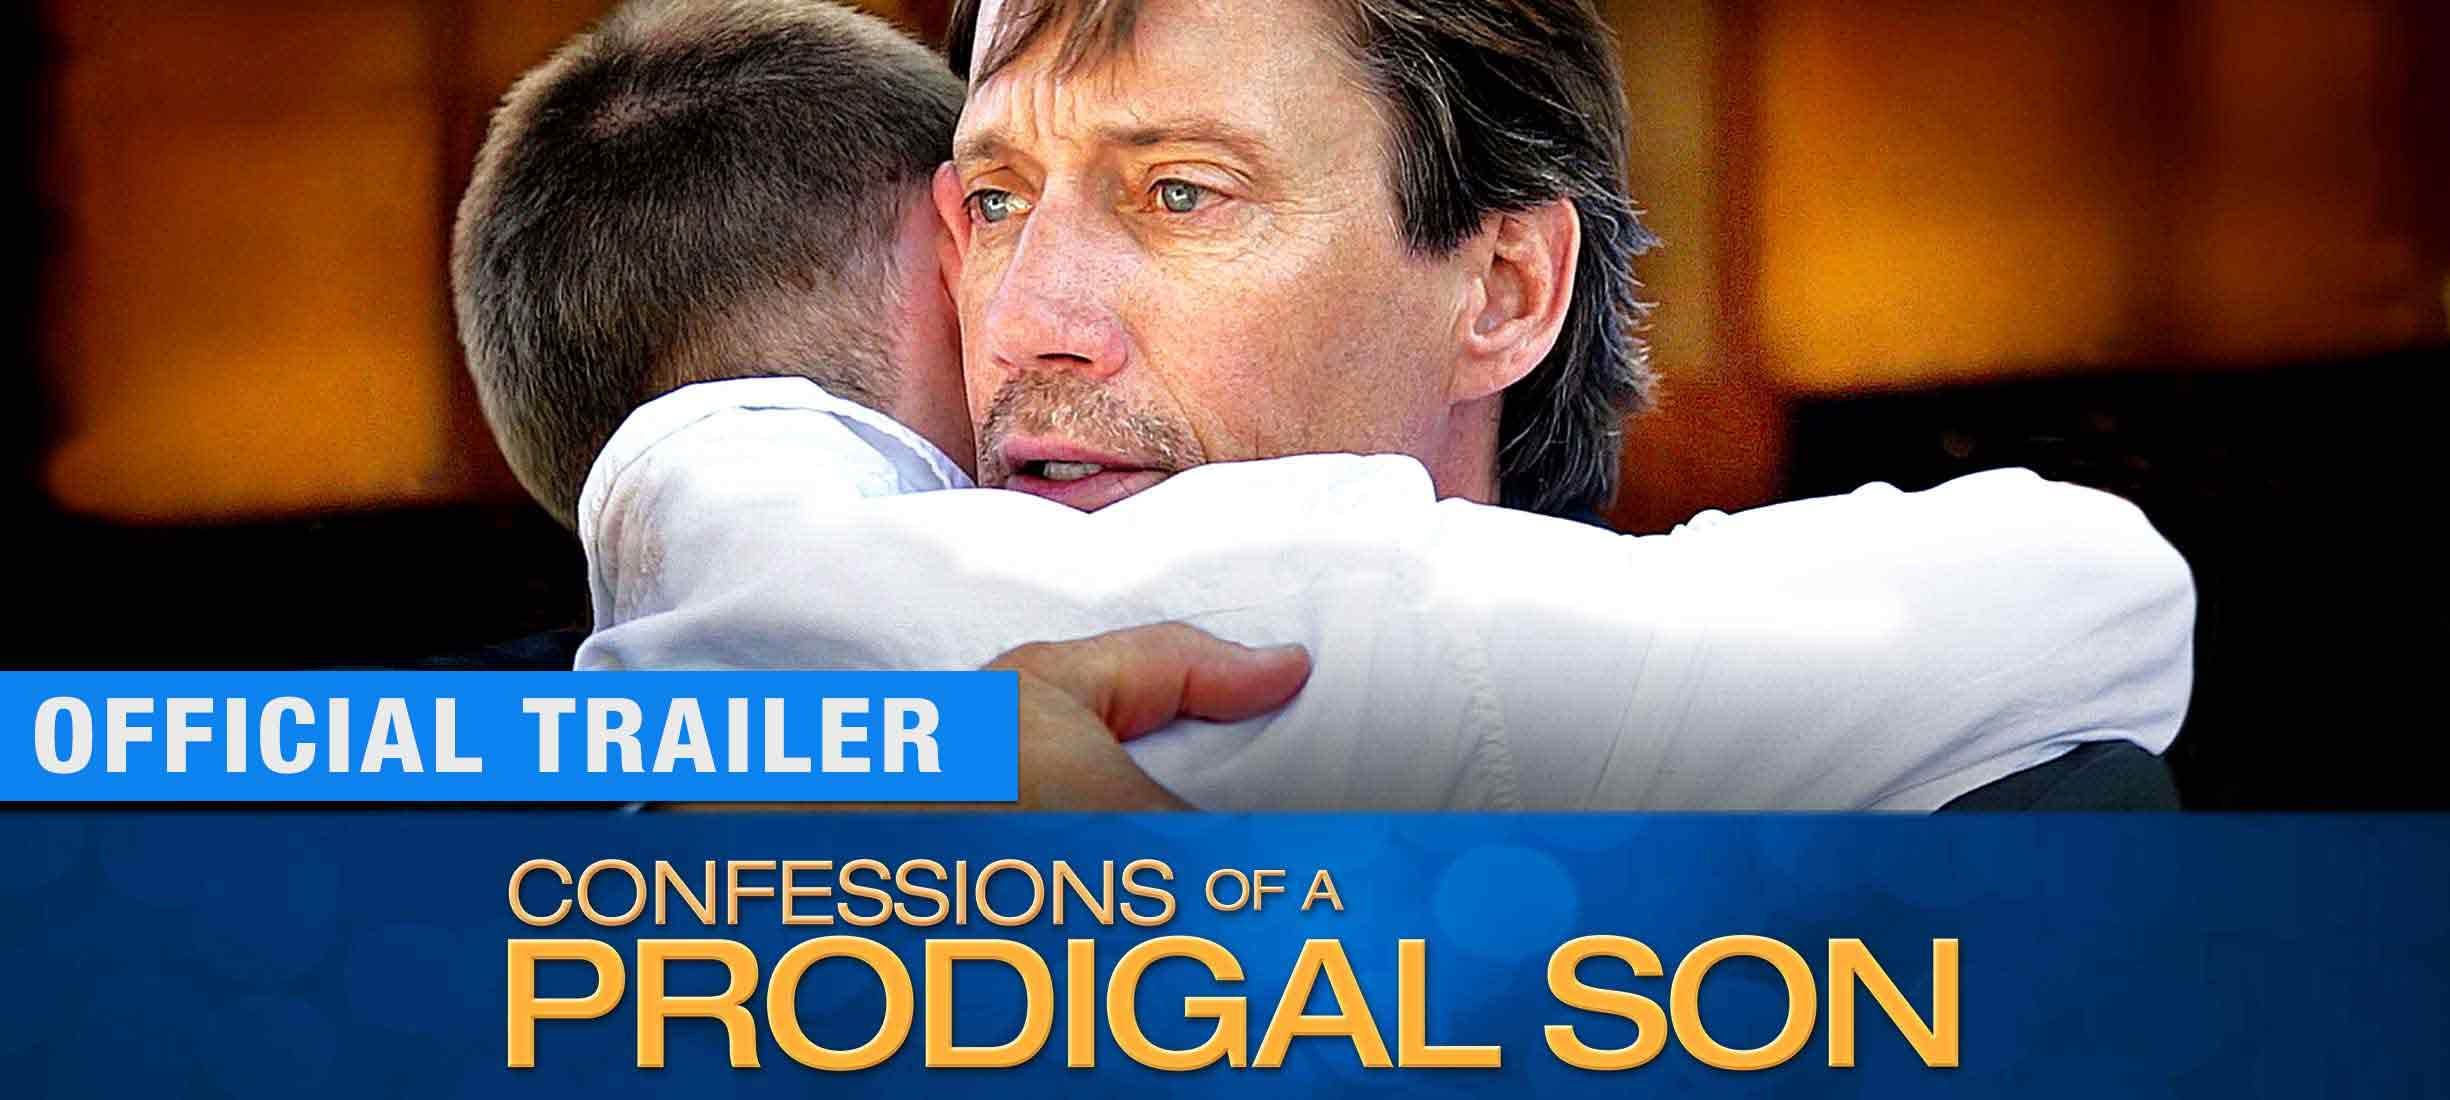 Confessions of a Prodigal Son: Trailer